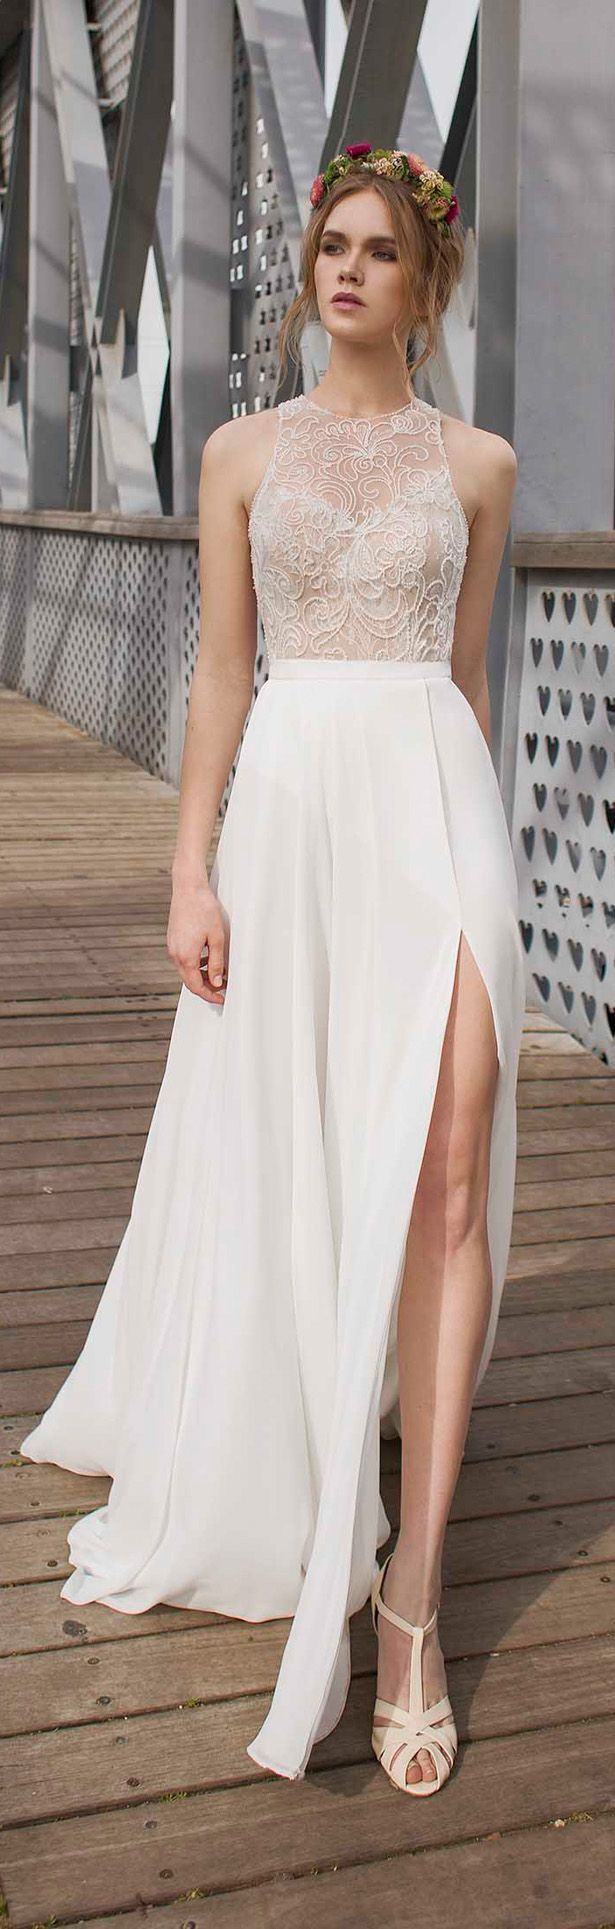 Simple white dress for civil wedding dress for country wedding